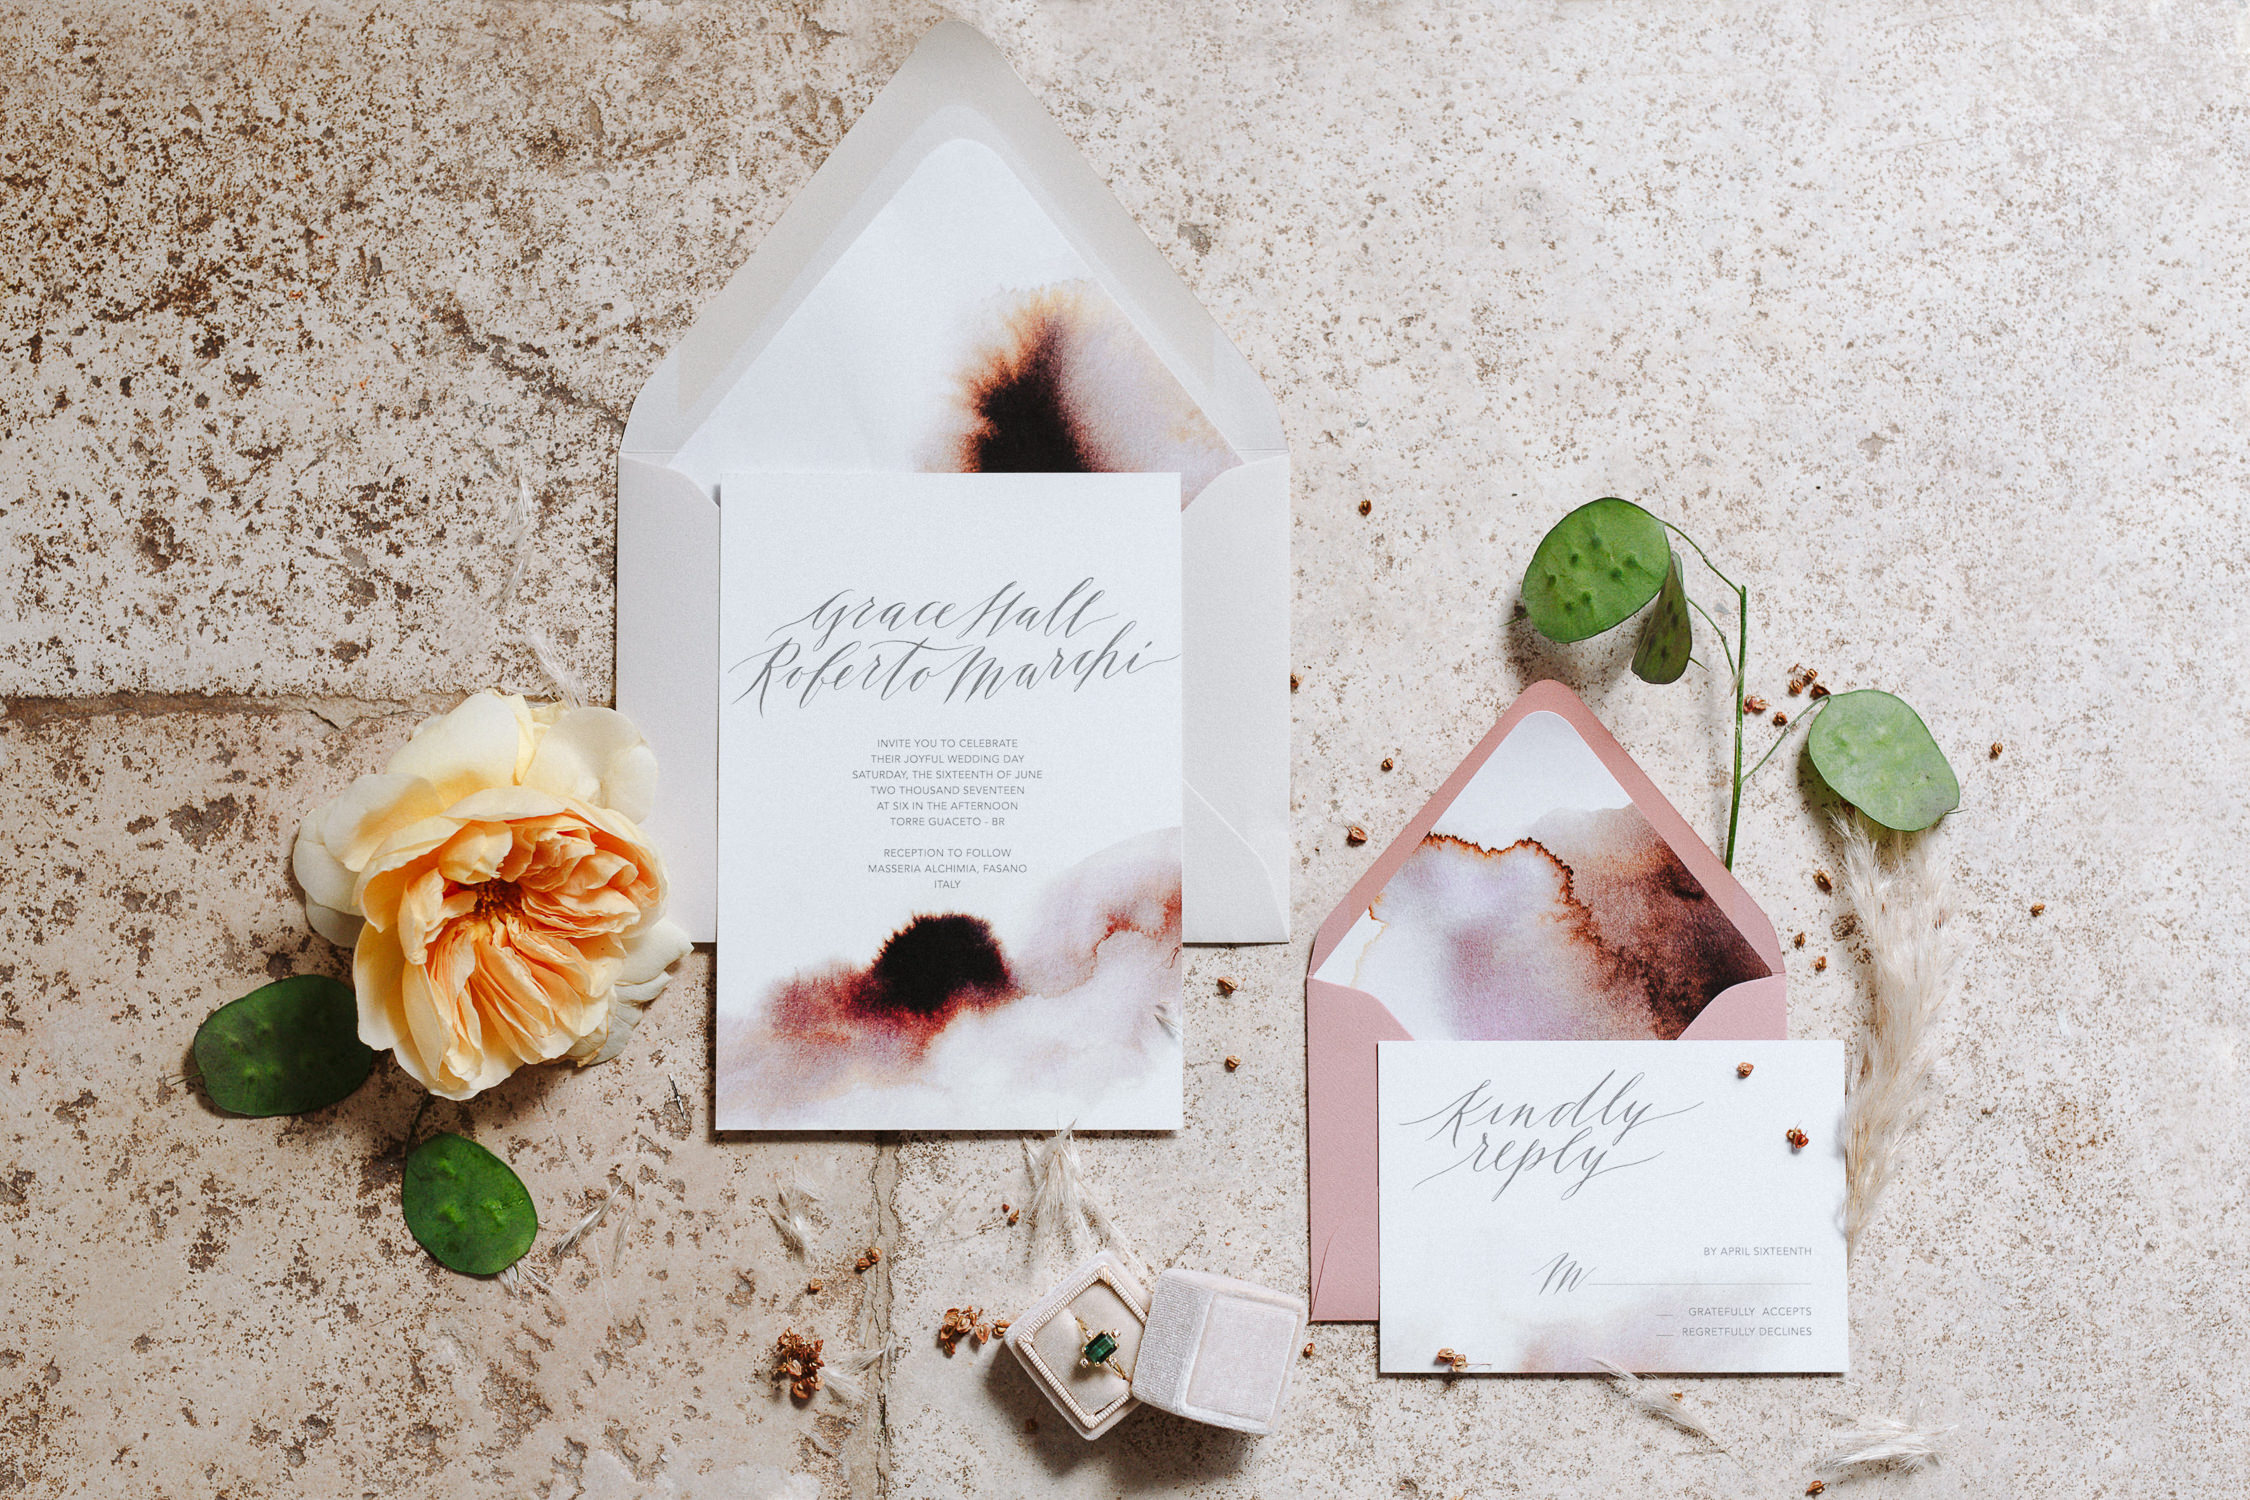 Bespoke modern calligraphy invitation with watercolors for a romantic elopement in Italy | Designer: Camilla Anchisi Design | Photography: Camilla Anchisi Photography Featured on: Grey Likes Wedding / 100 Layer Cake / Hochzeitsguide